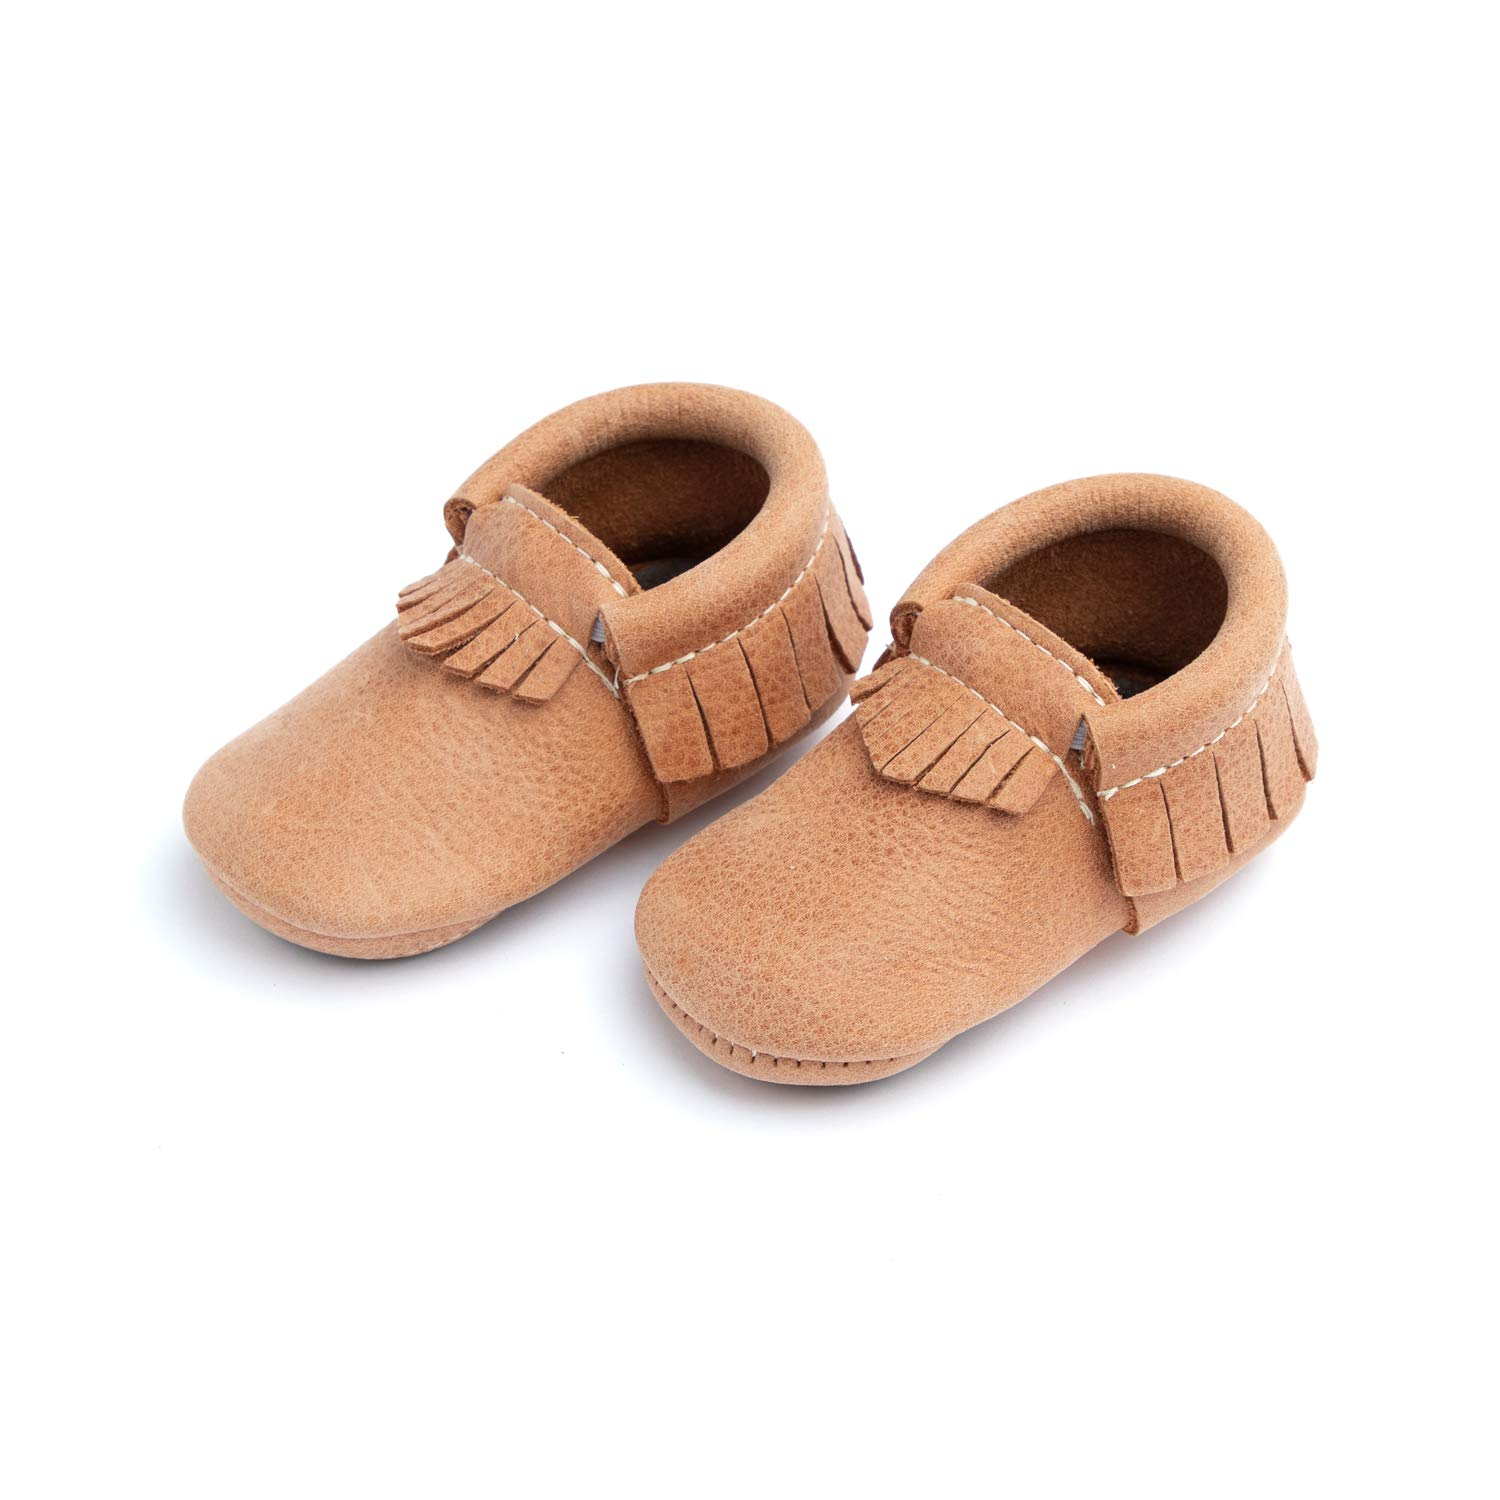 Freshly Picked - Soft Sole Leather Moccasins - Baby Girl Boy Shoes - Size 3 Zion Tan by Freshly Picked